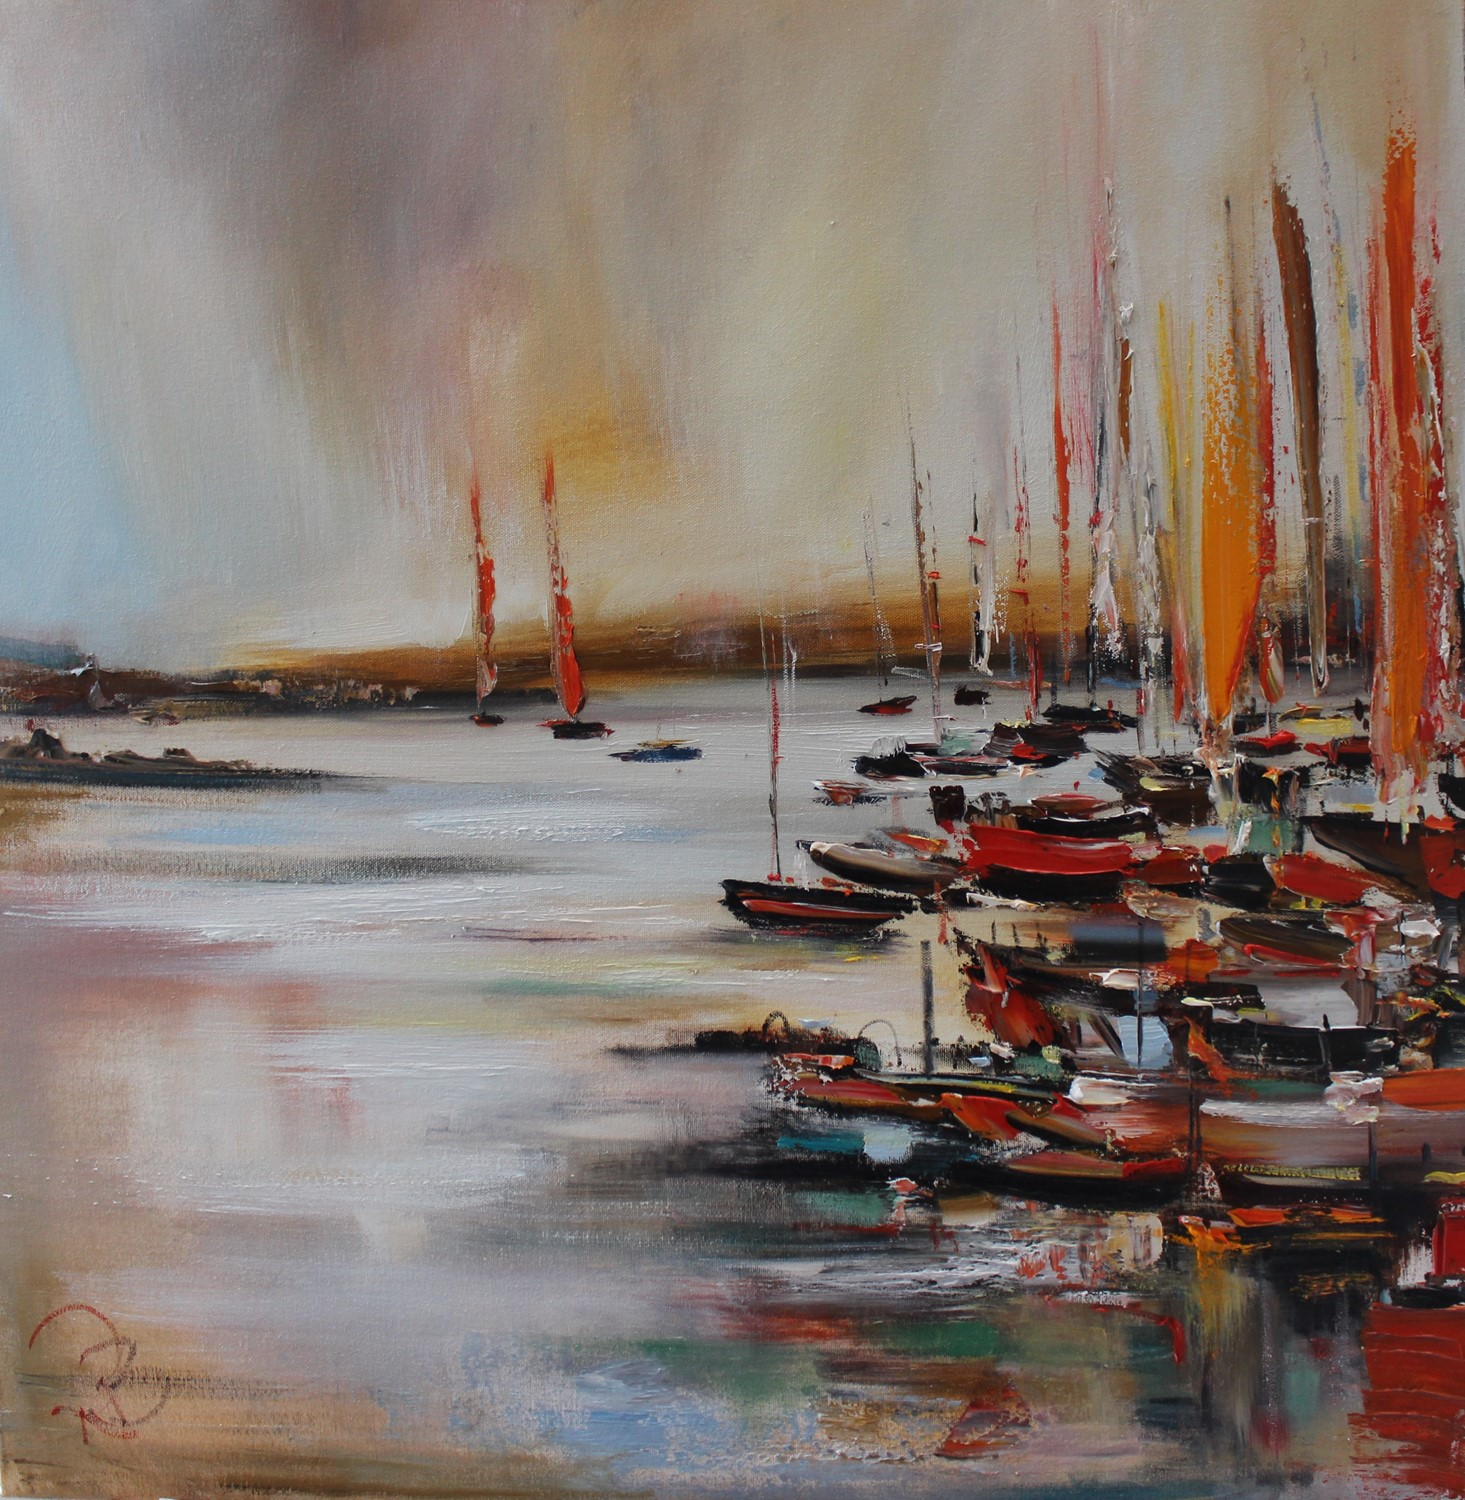 'At the Quay' by artist Rosanne Barr